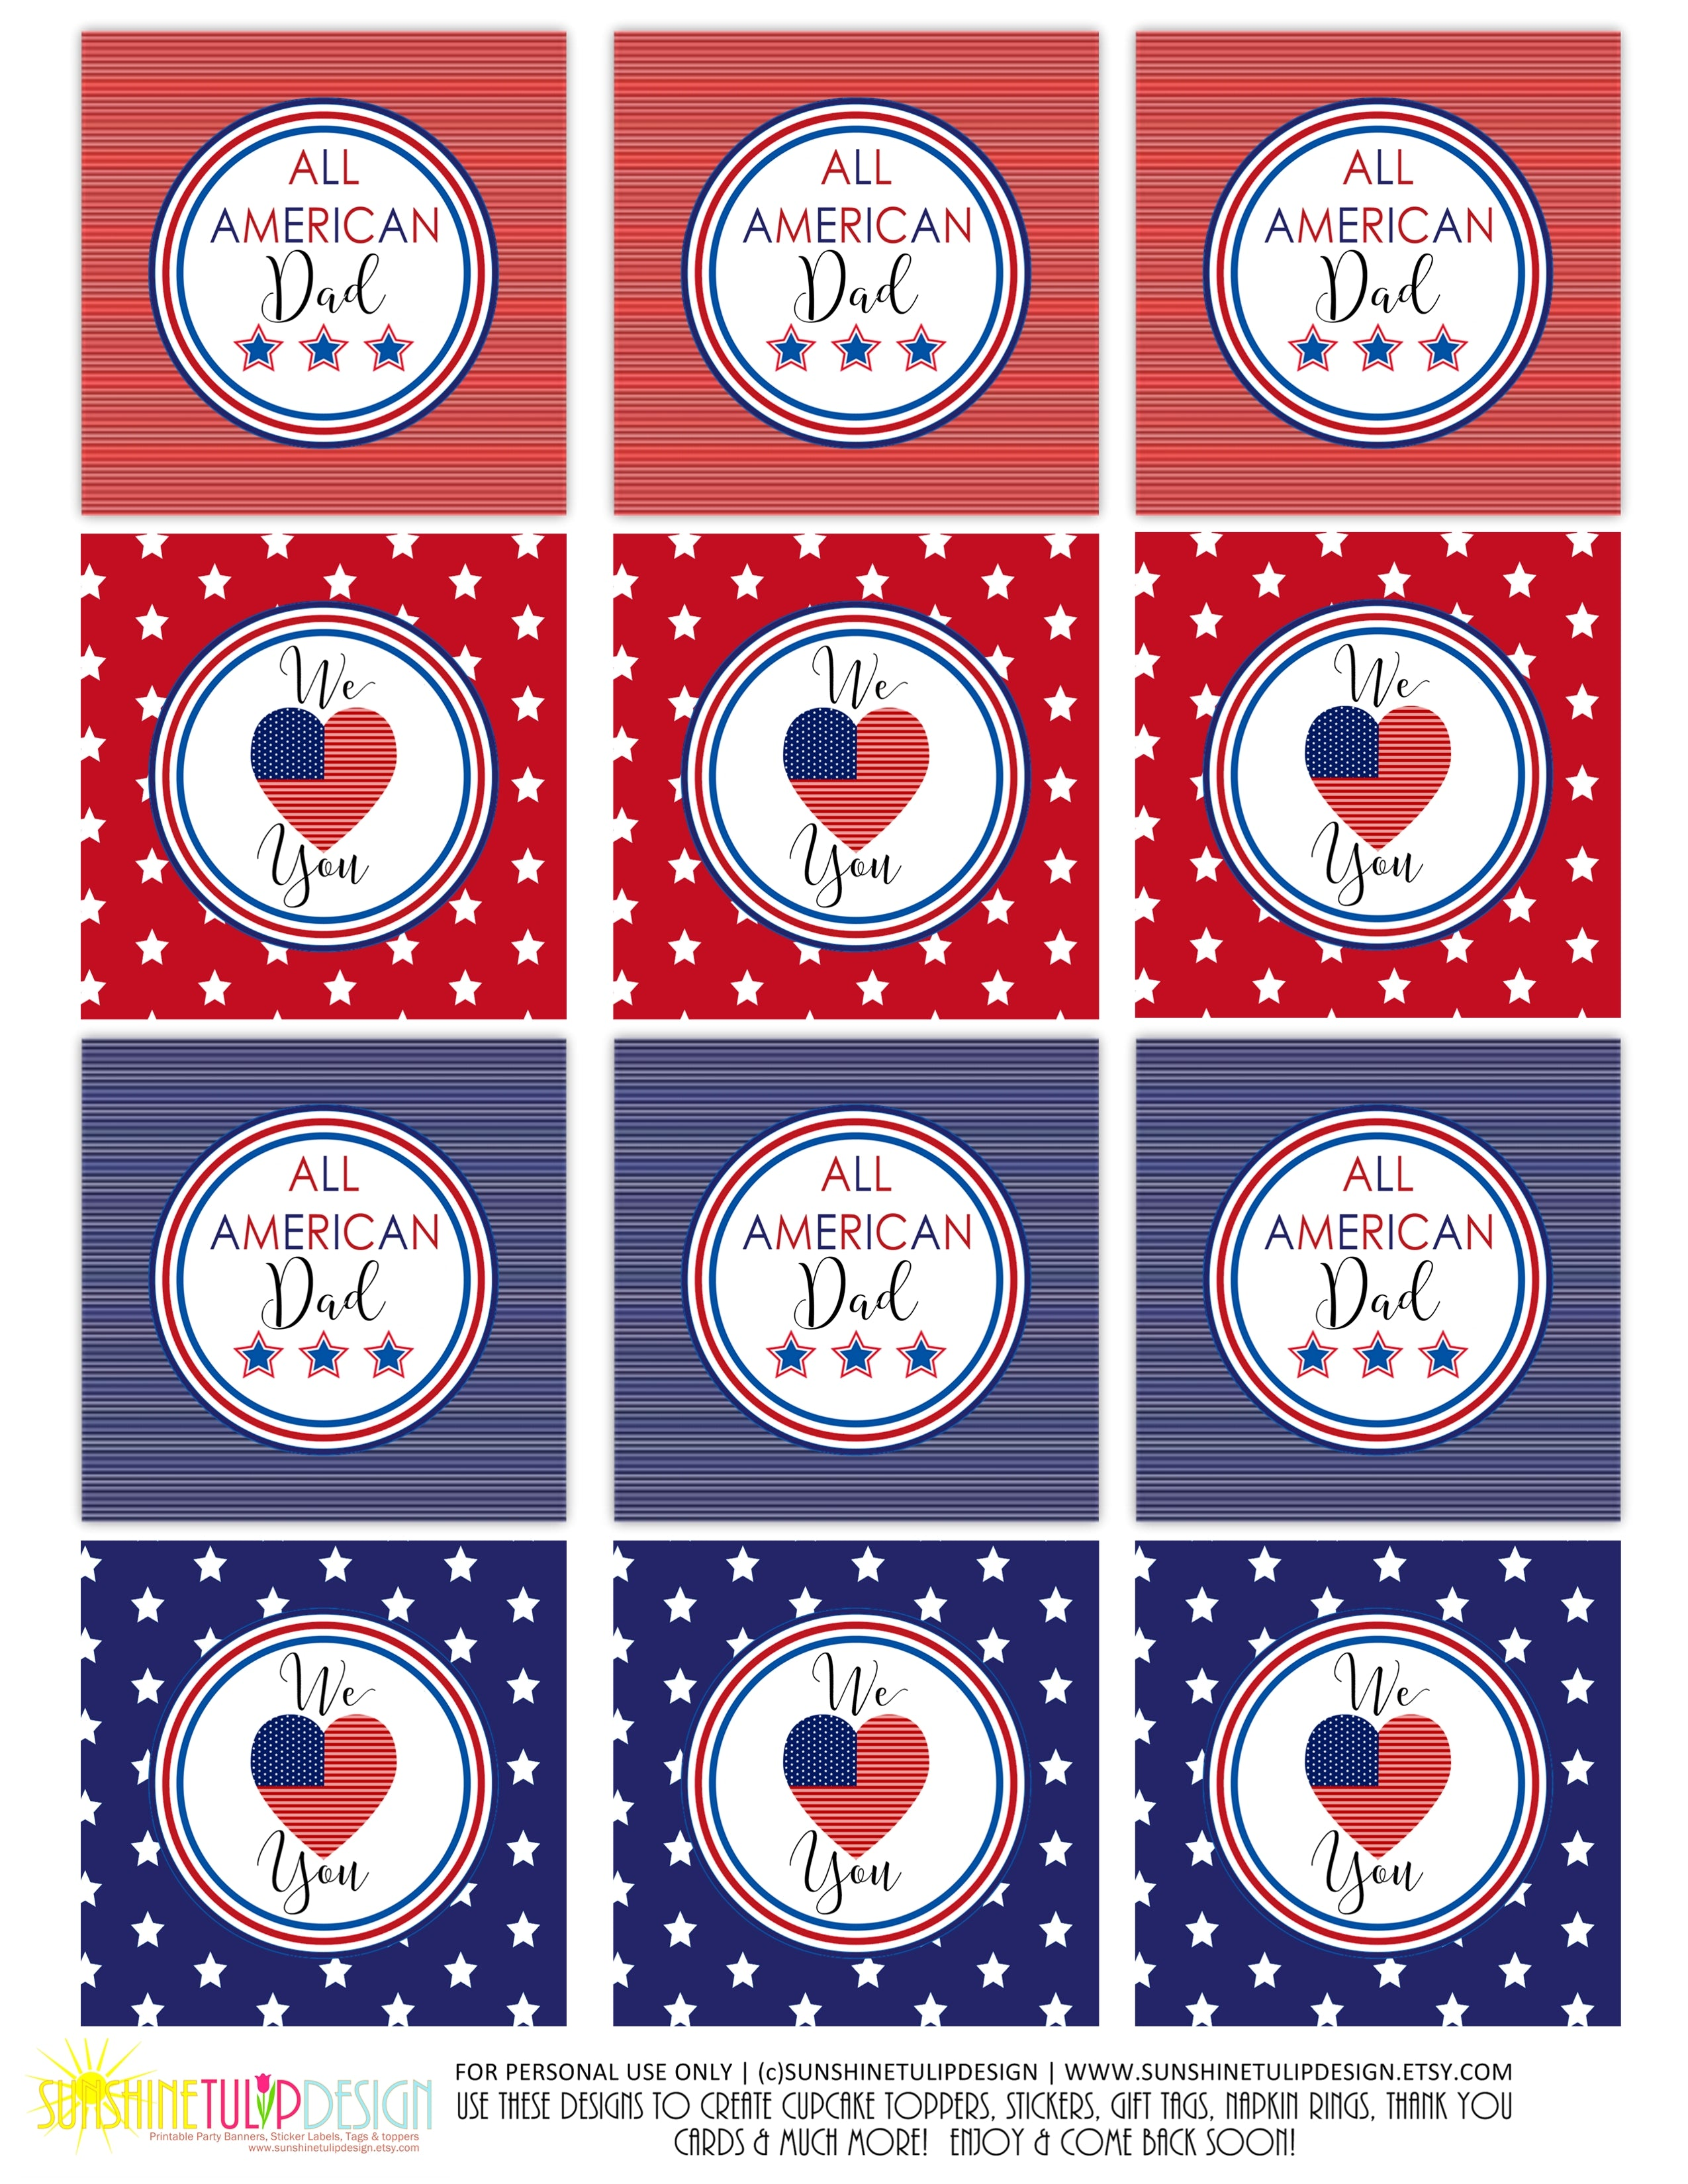 graphic regarding Printable Decorations identified as Printable Fathers Working day Banner Decorations, Printable All American Father Bash Package deal, Printable Fathers Working day BBQ Decor SUNSHINETULIPDESIGN